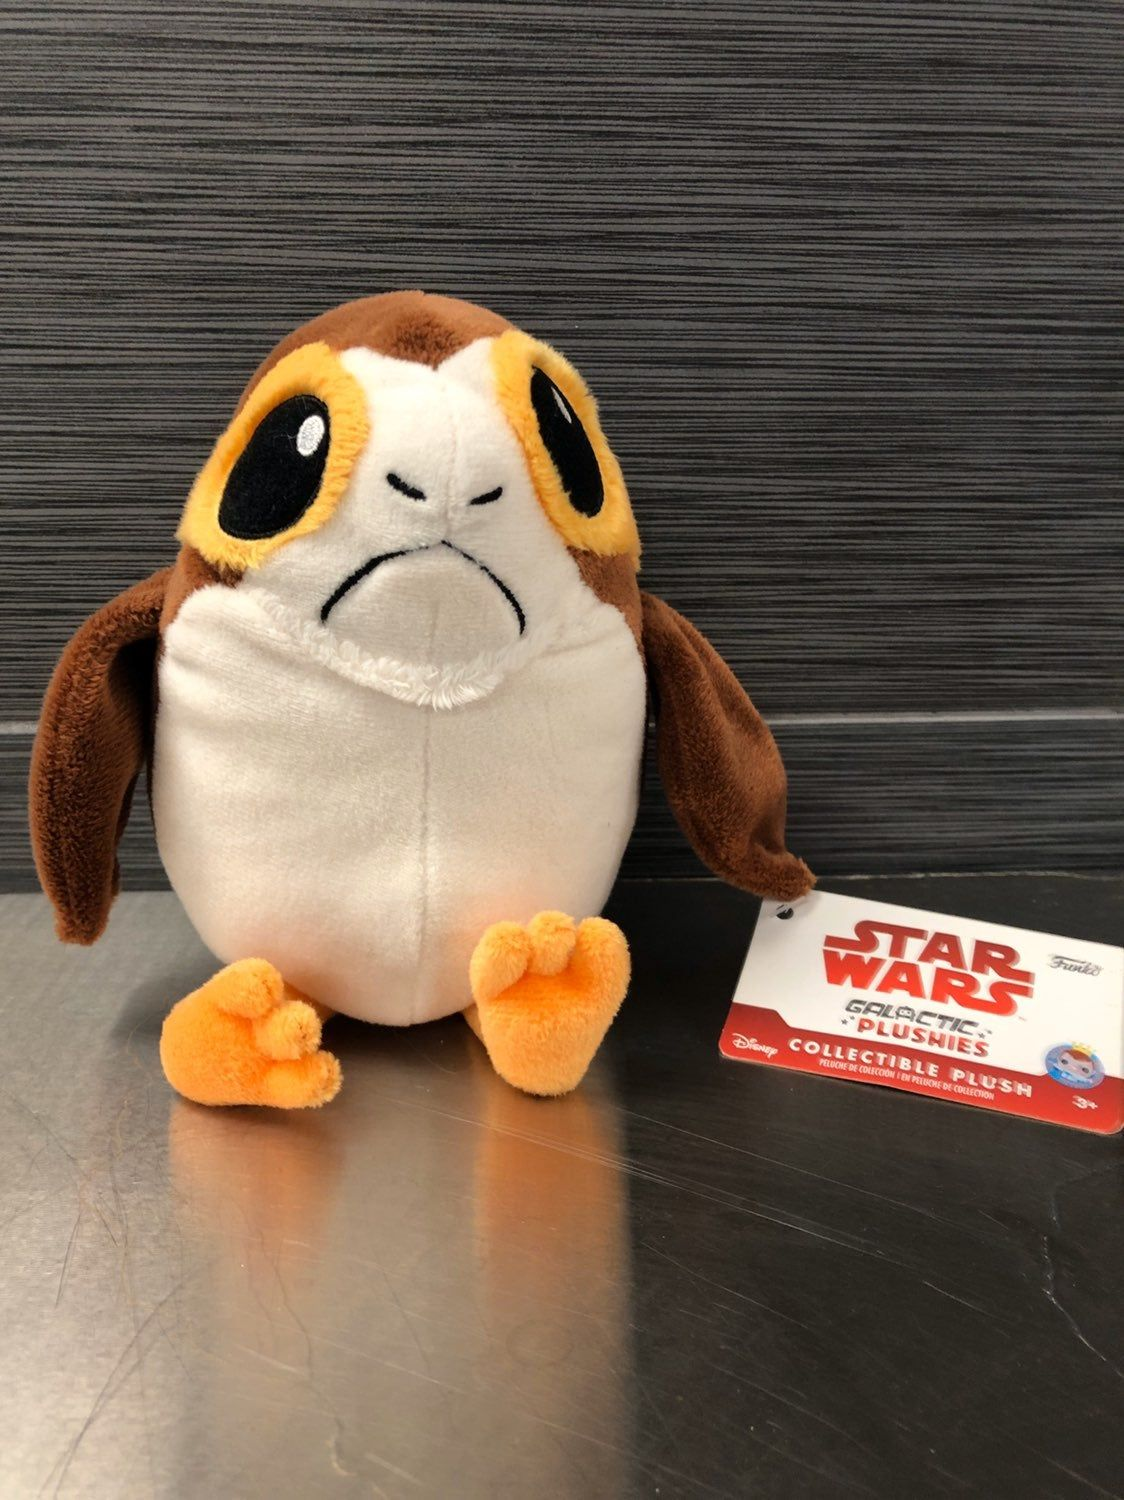 Star Wars Exclusive Porg Funko 7inch Plush Brand New And Ships Fast We Have More Star Wars Plush To Bundle For A Big Discount Peluches